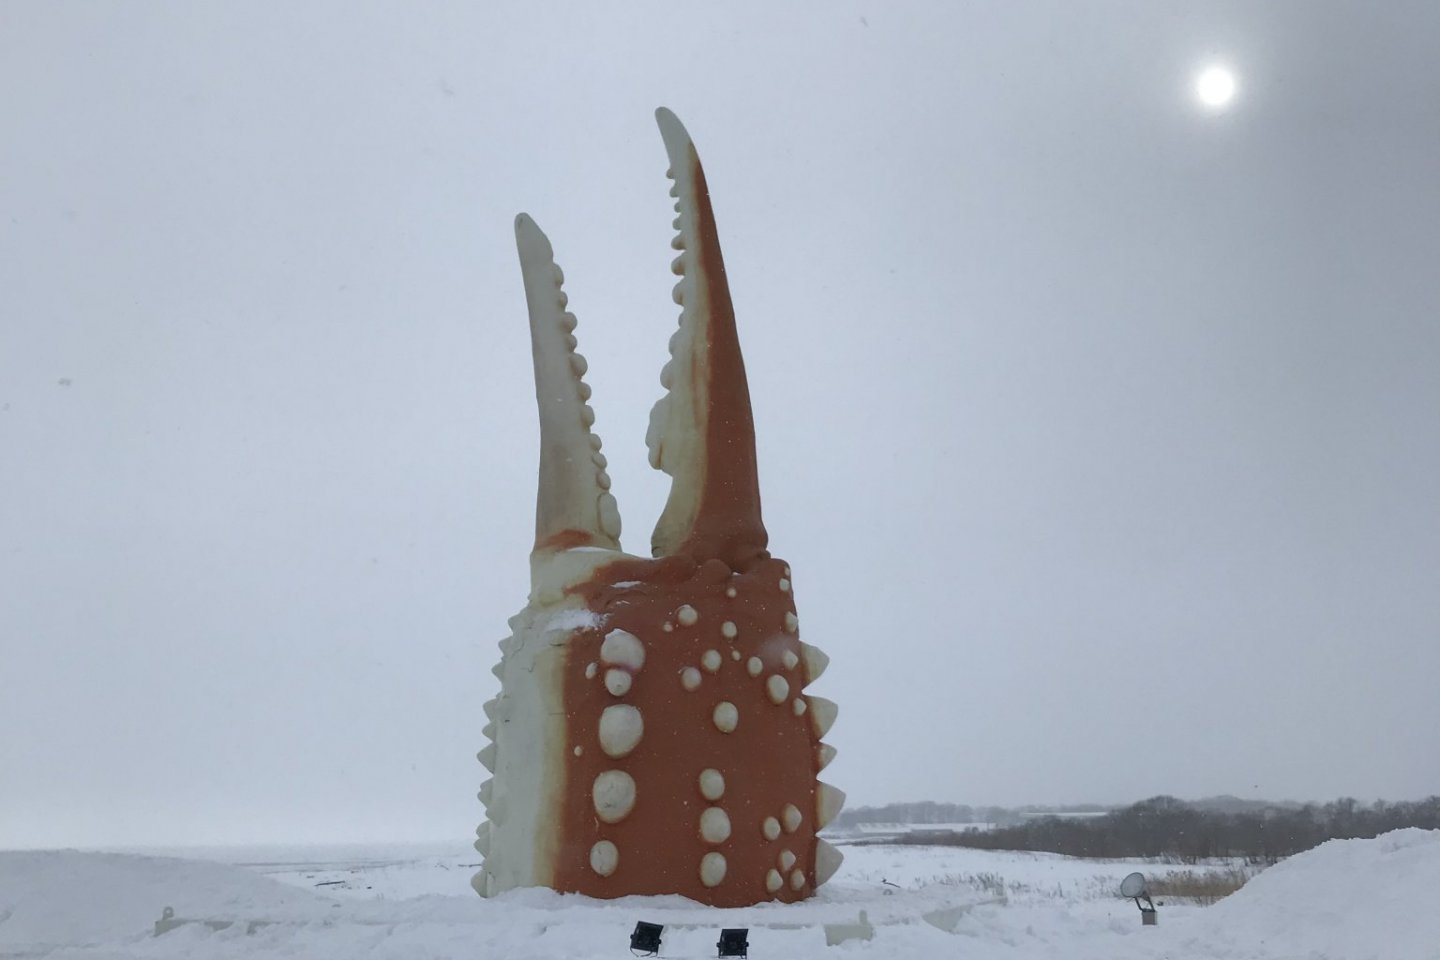 Braving the cold winter air and snow to check out the iconic crab claw